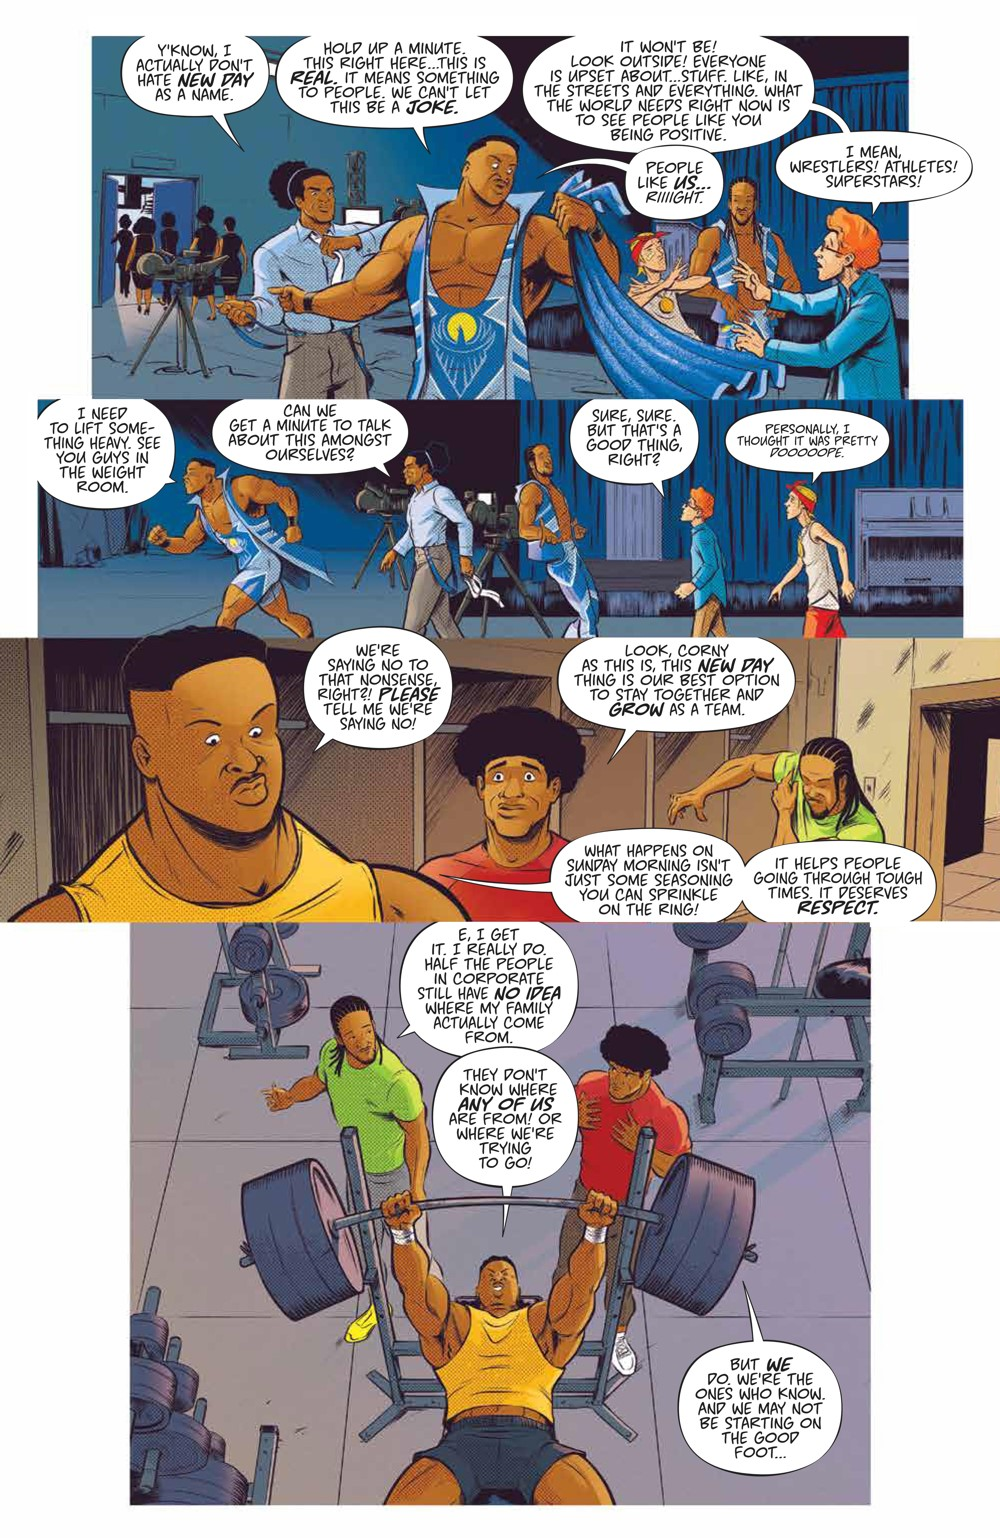 WWE_NewDay_002_PRESS_5 ComicList Previews: WWE THE NEW DAY POWER OF POSITIVITY #2 (OF 2)